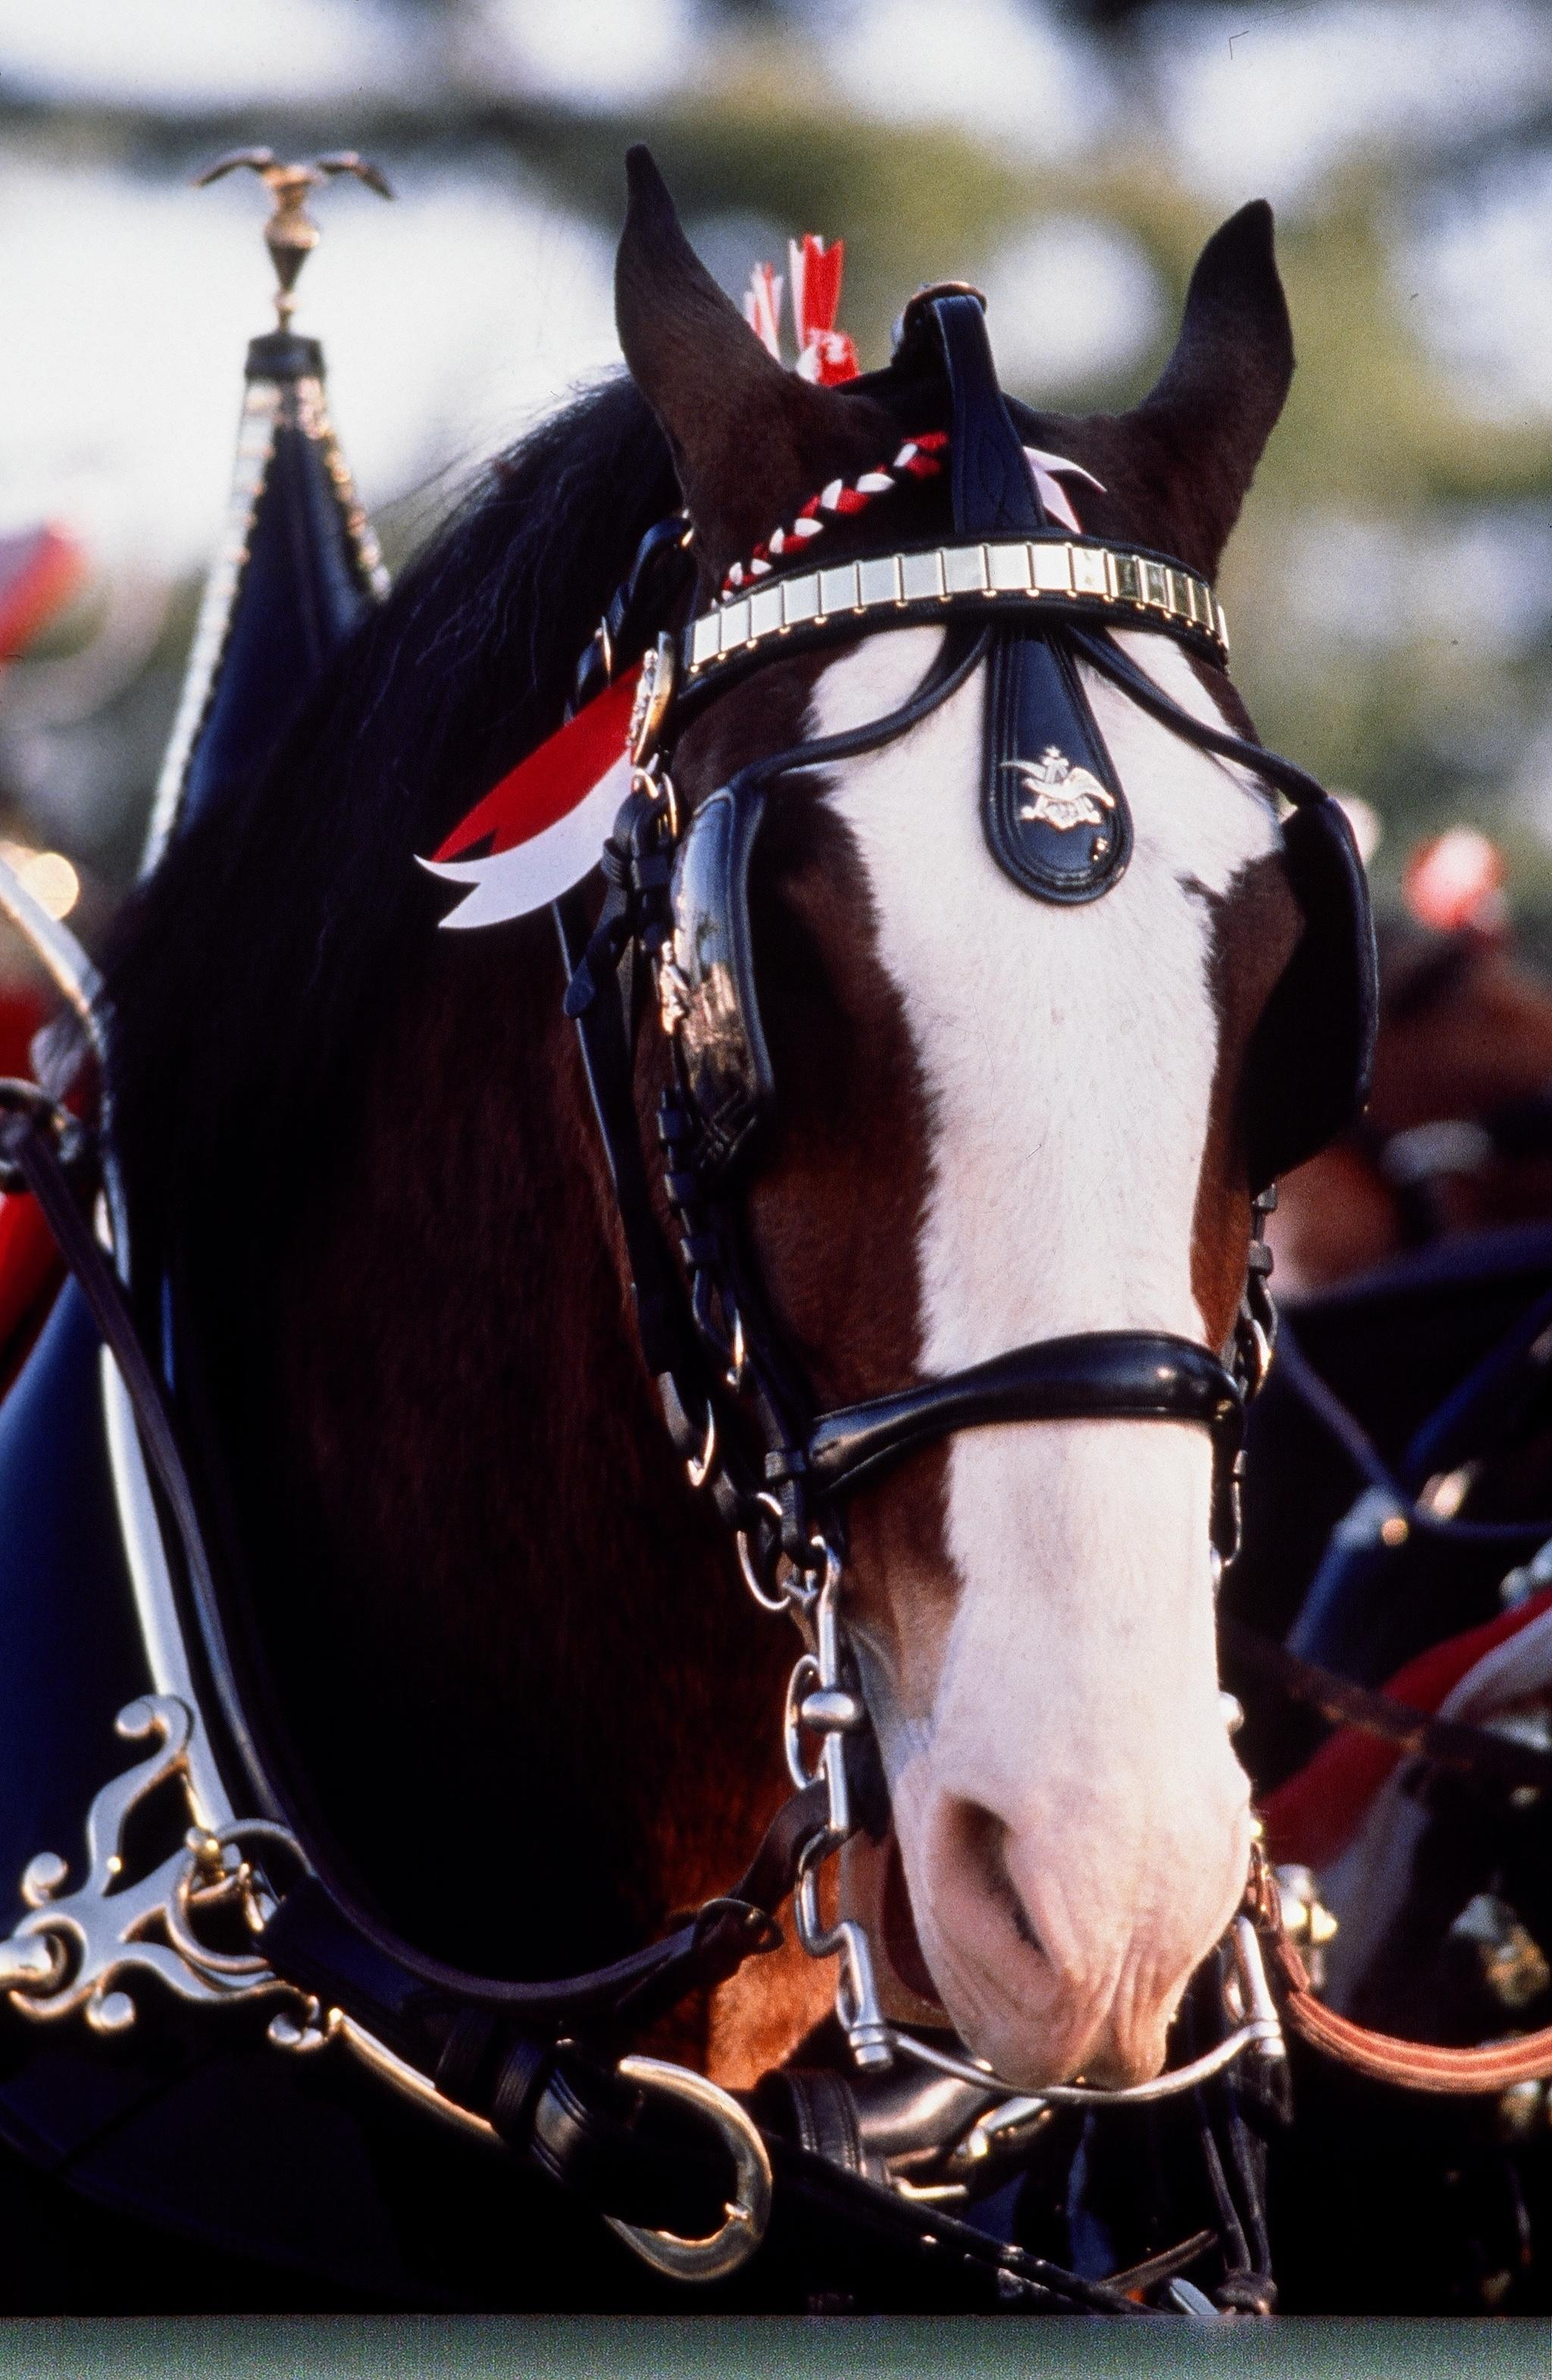 Detroit Lakes area residents will have plenty of opportunities to view the Budweiser Clydesdales up close and personal during their visit to the community this Saturday, June 1. (Submitted photo)